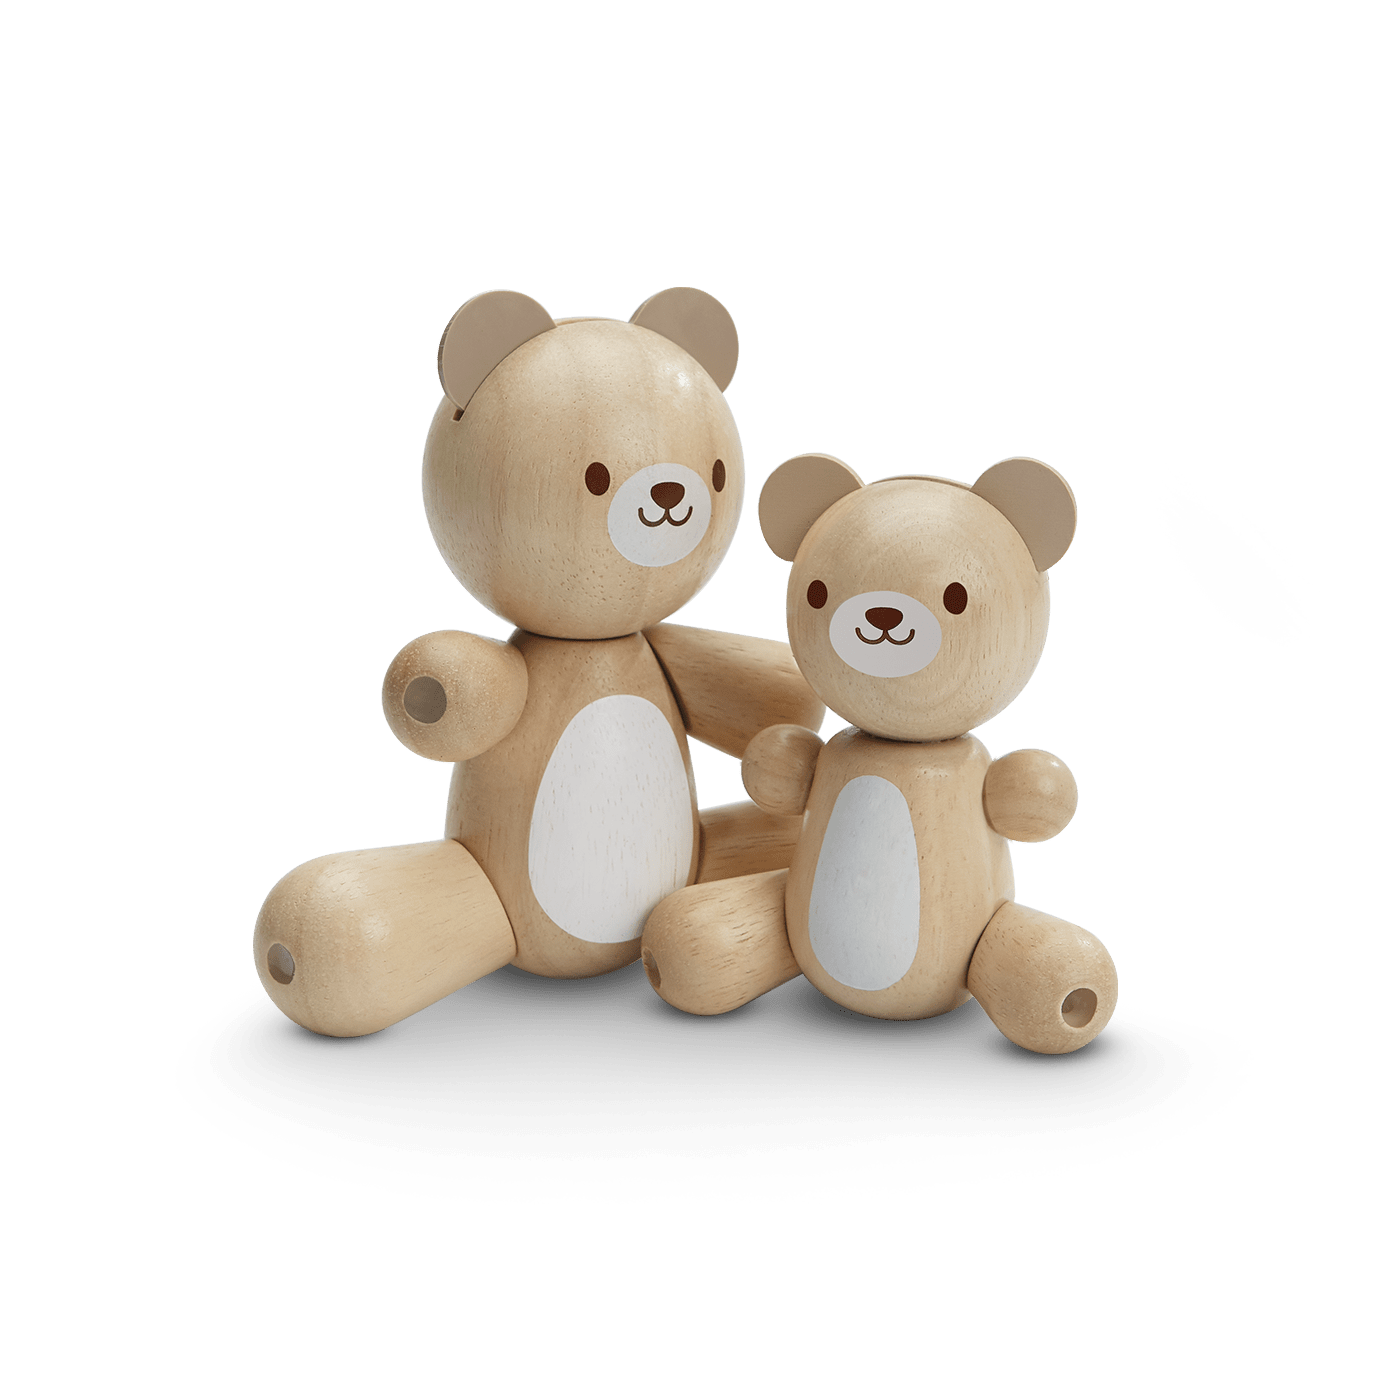 5264_PlanToys_BEAR_and_LITTLE_BEAR_Babies_Emotion_Coordination_Tactile_Language_and_Communications_Imagination_Social_12m_Wooden_toys_Education_toys_Safety_Toys_Non-toxic_0.png